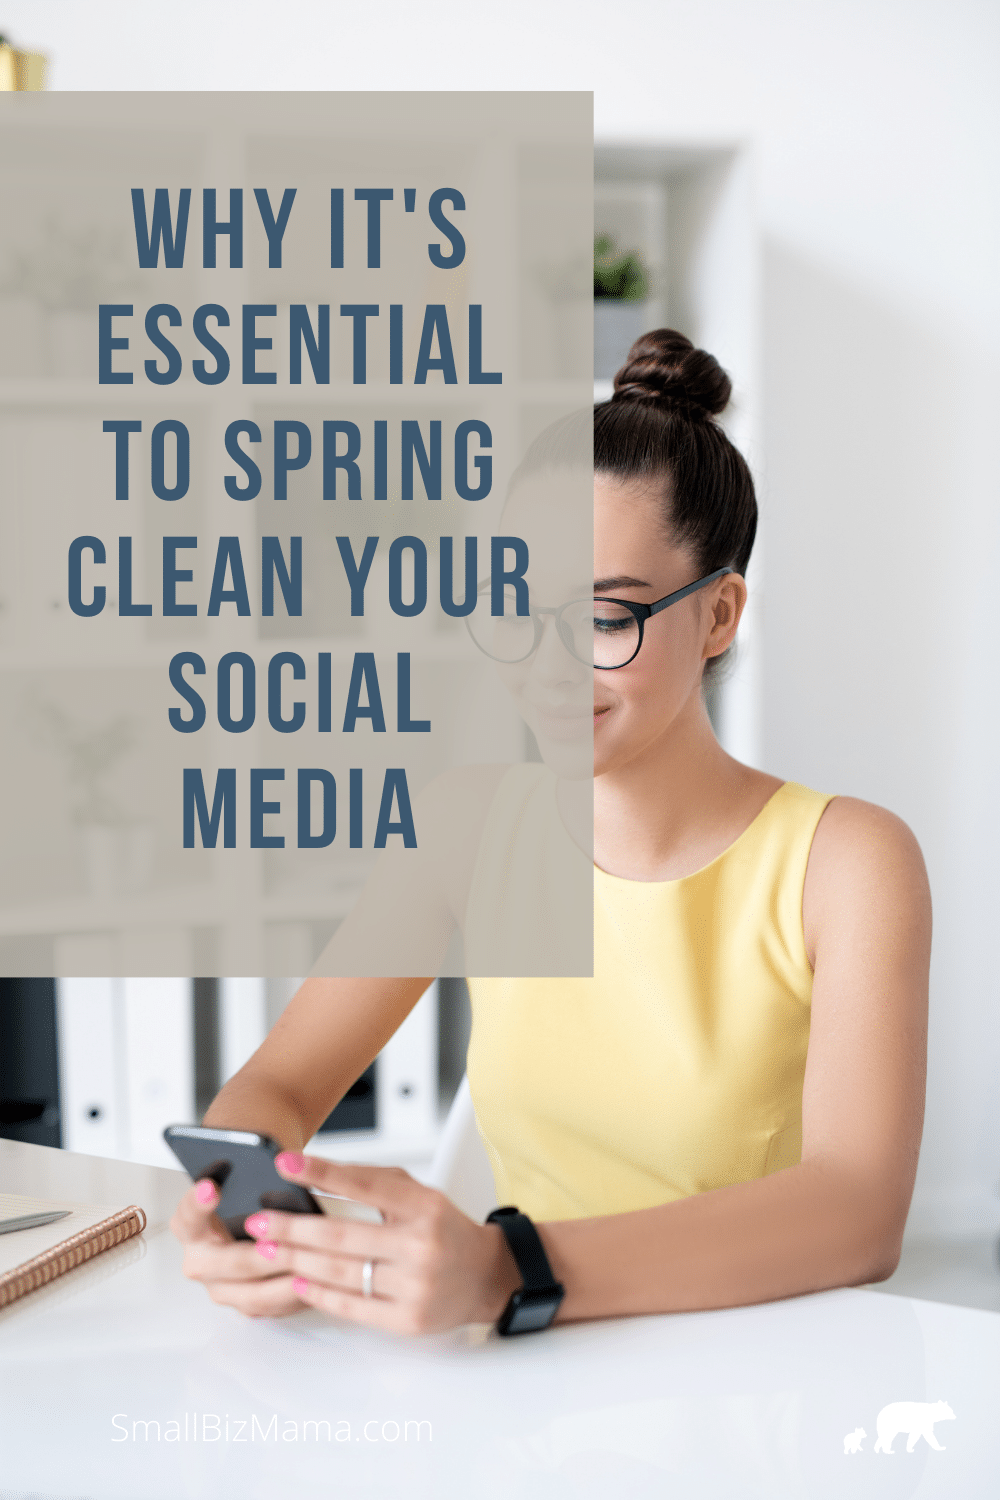 Why it's essential to spring clean your social media